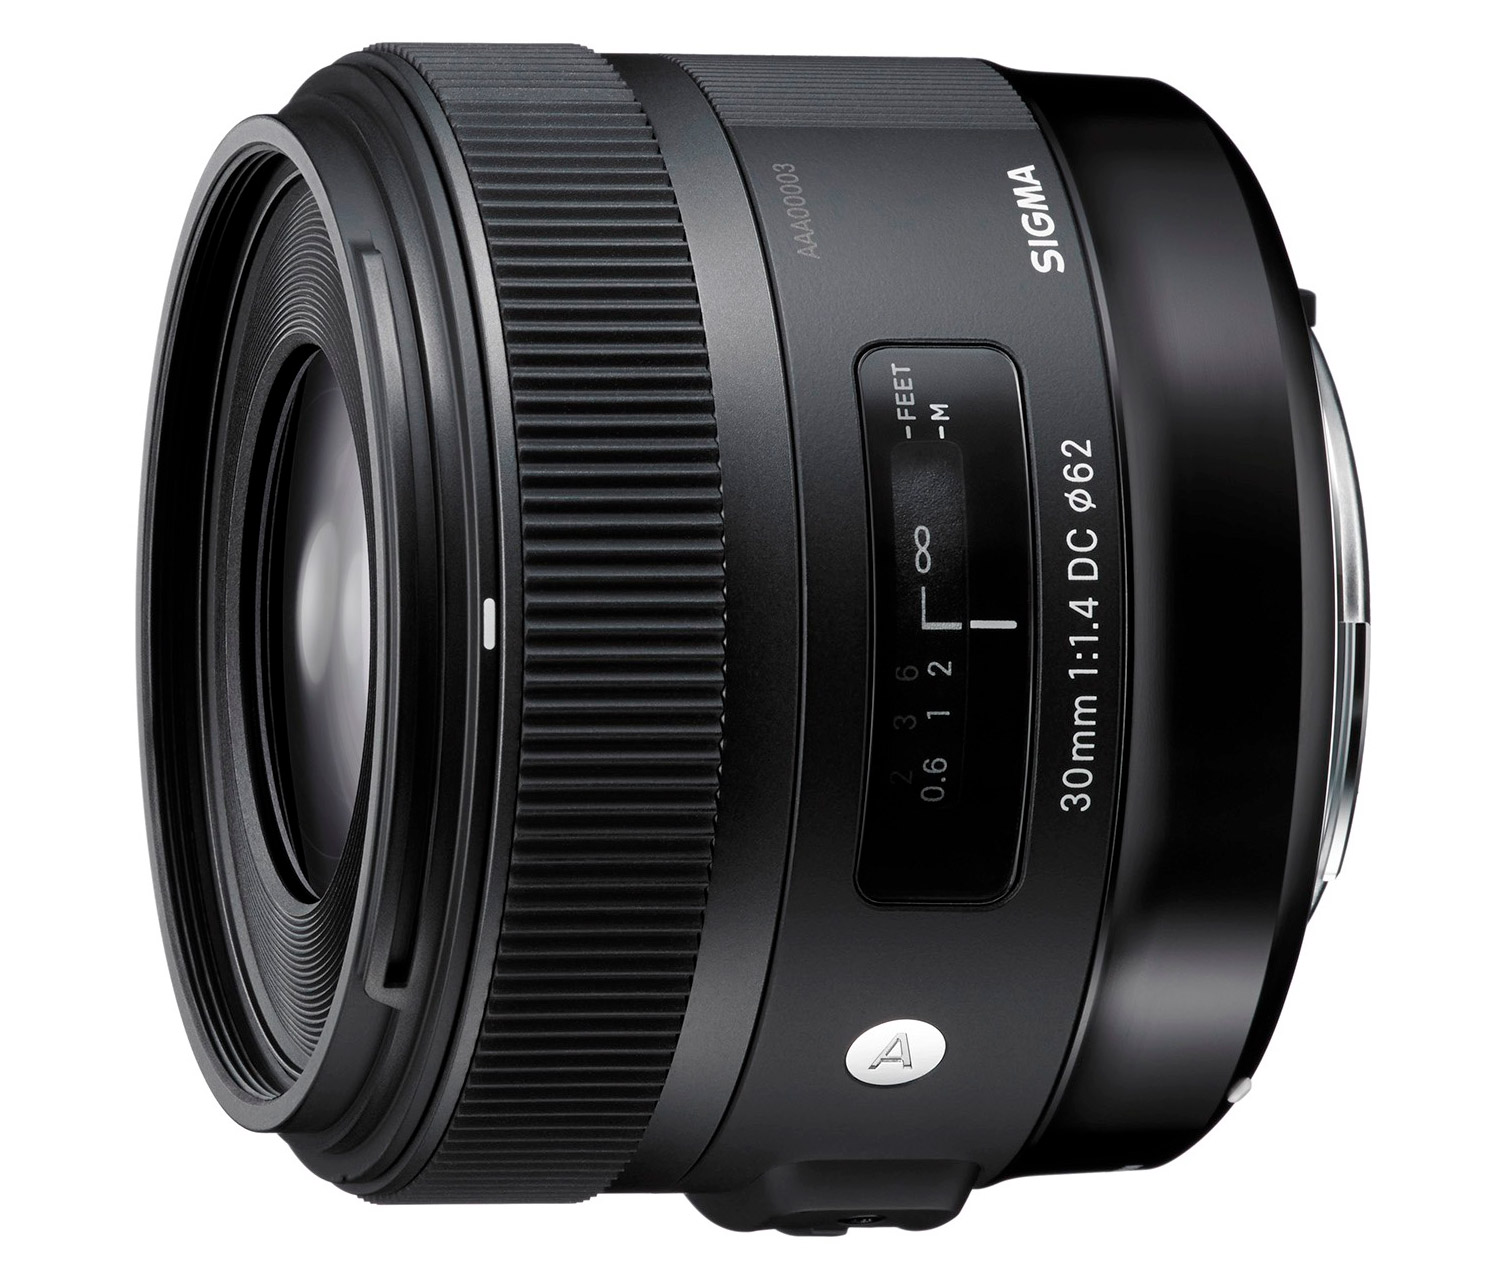 Sigma 30mm f/1.4 DC Art : Specifications and Opinions   JuzaPhoto